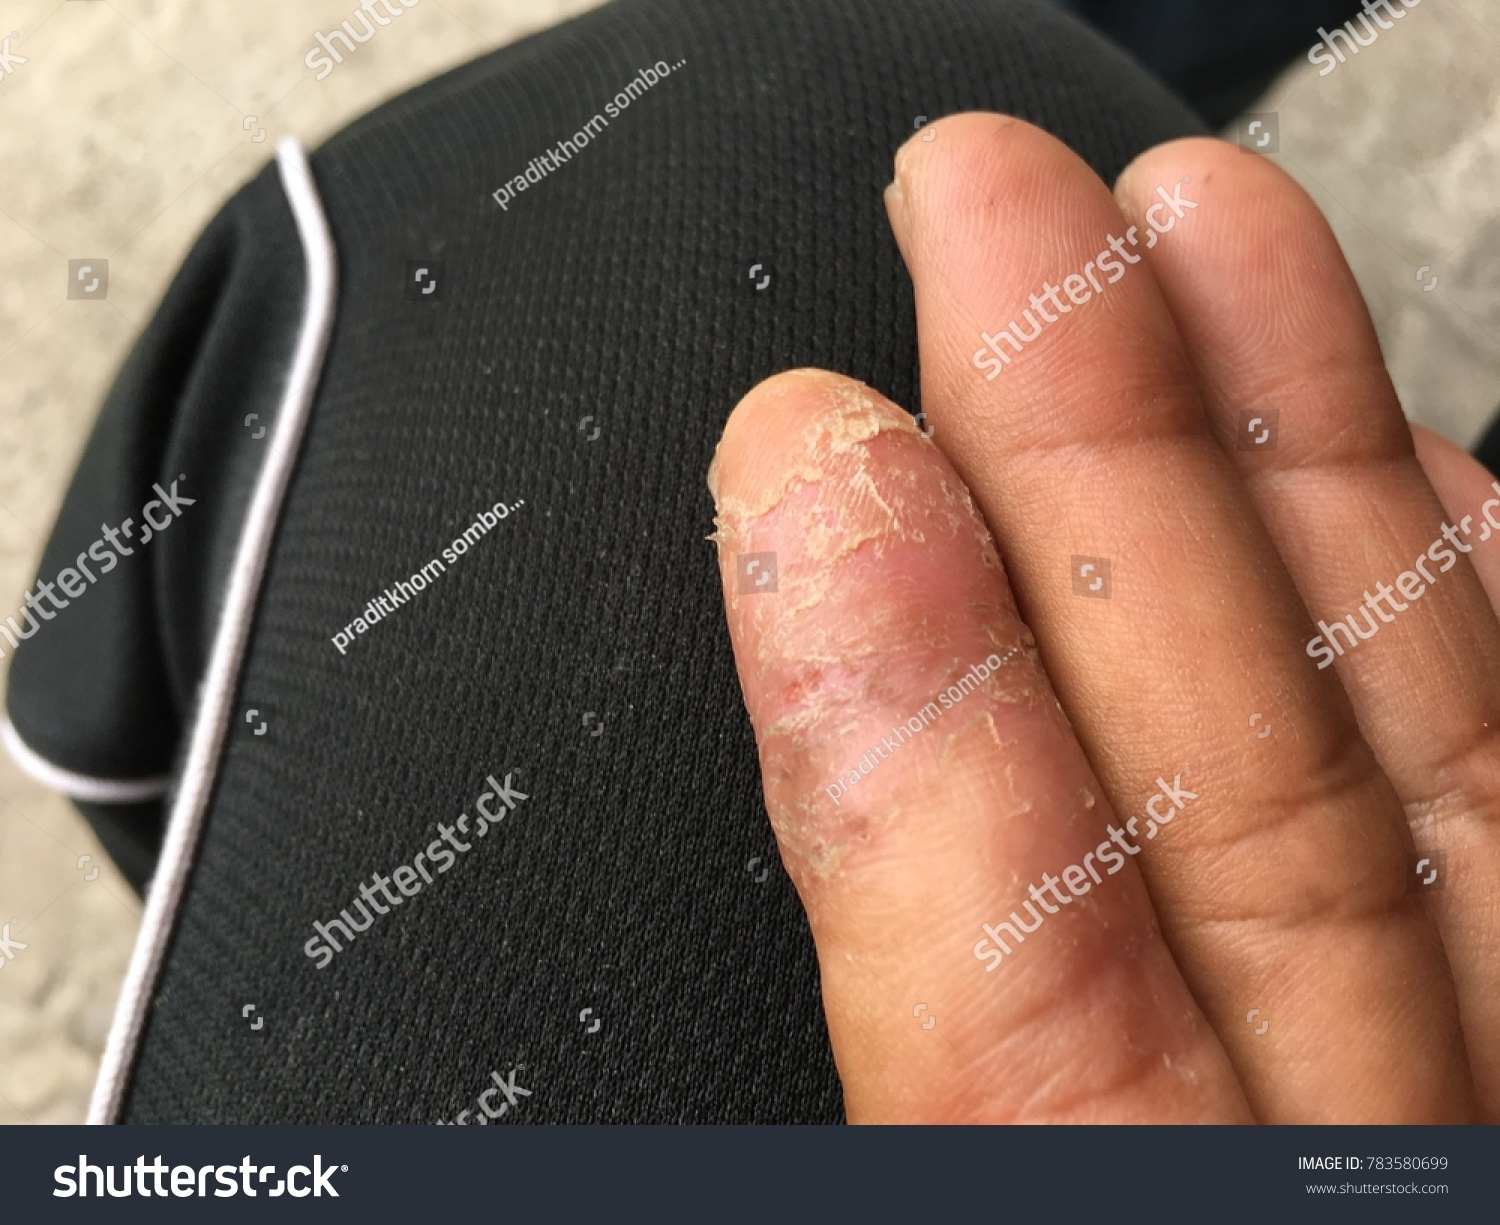 Close Nail Fungus On Finger Hand Stock Photo (Royalty Free ...